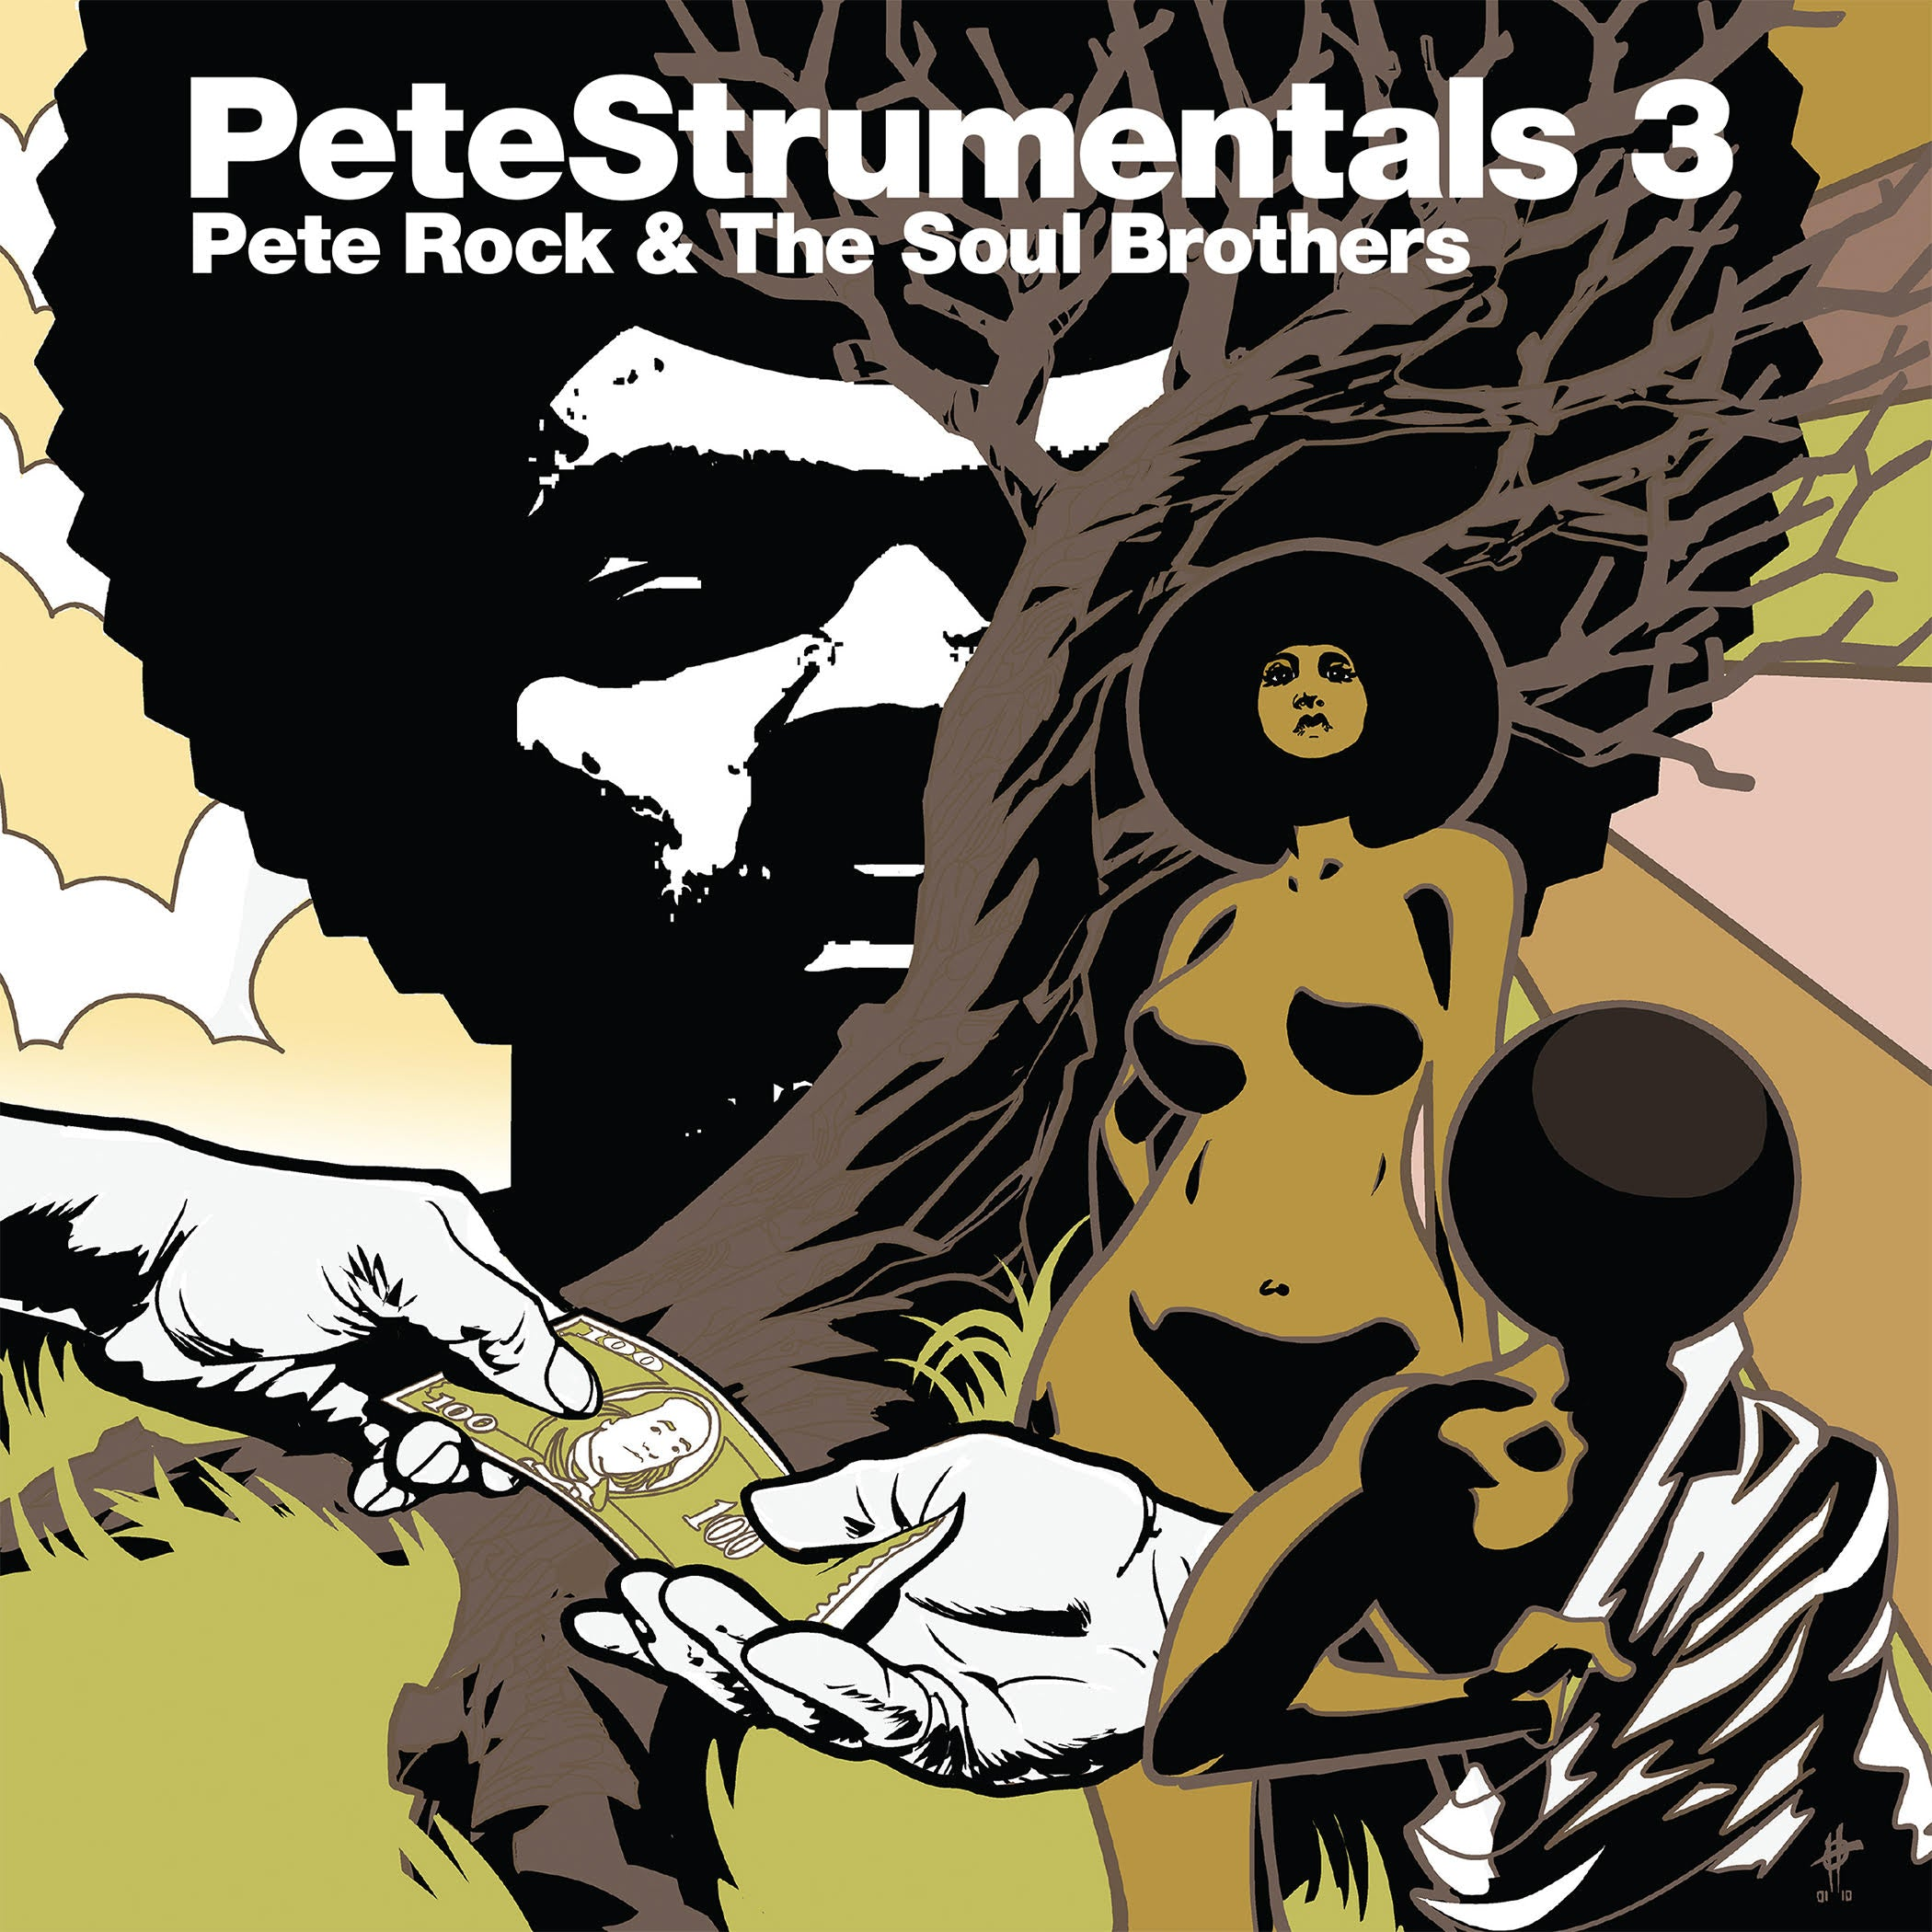 PETESTRUMENTALS 3: PETE ROCK & THE SOUL BROTHERS (VINYL | CD | TAPE)